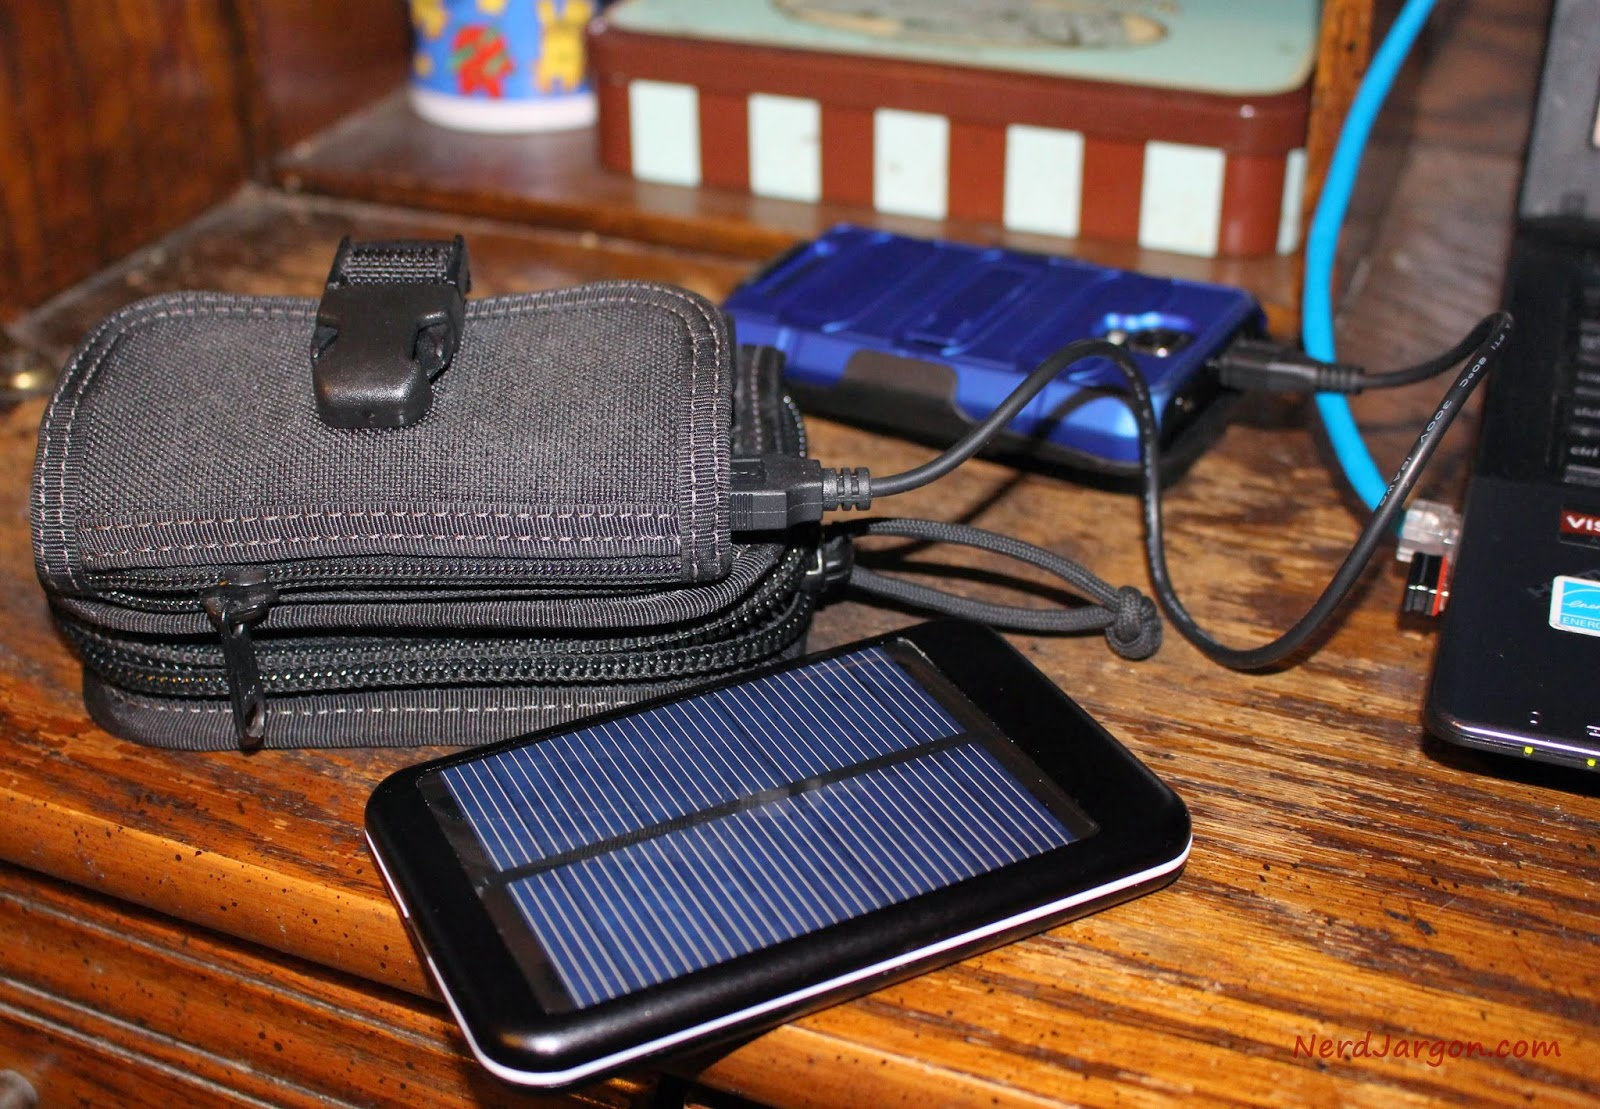 Maxpedition Rat Wallet With Ruinovo USB Battery Pack and Solar Charger